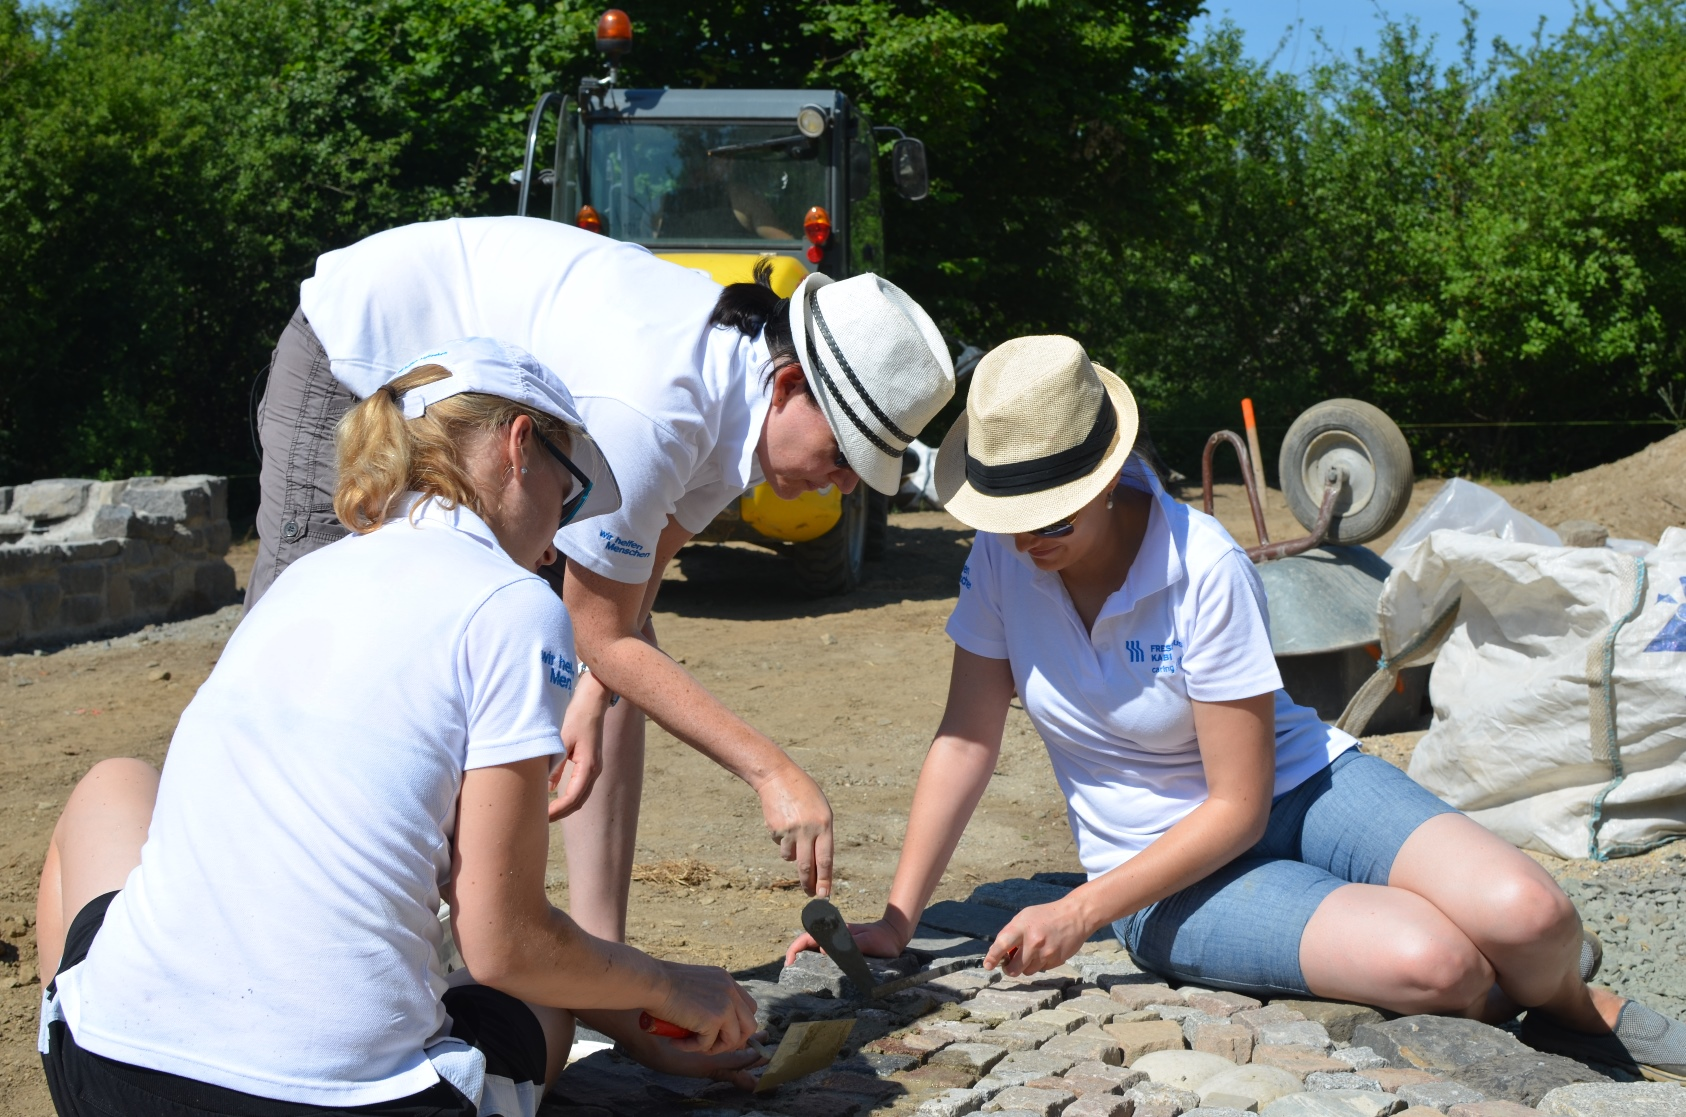 Fresenius Kabi Germany employees donate their time during the Active Helping Days